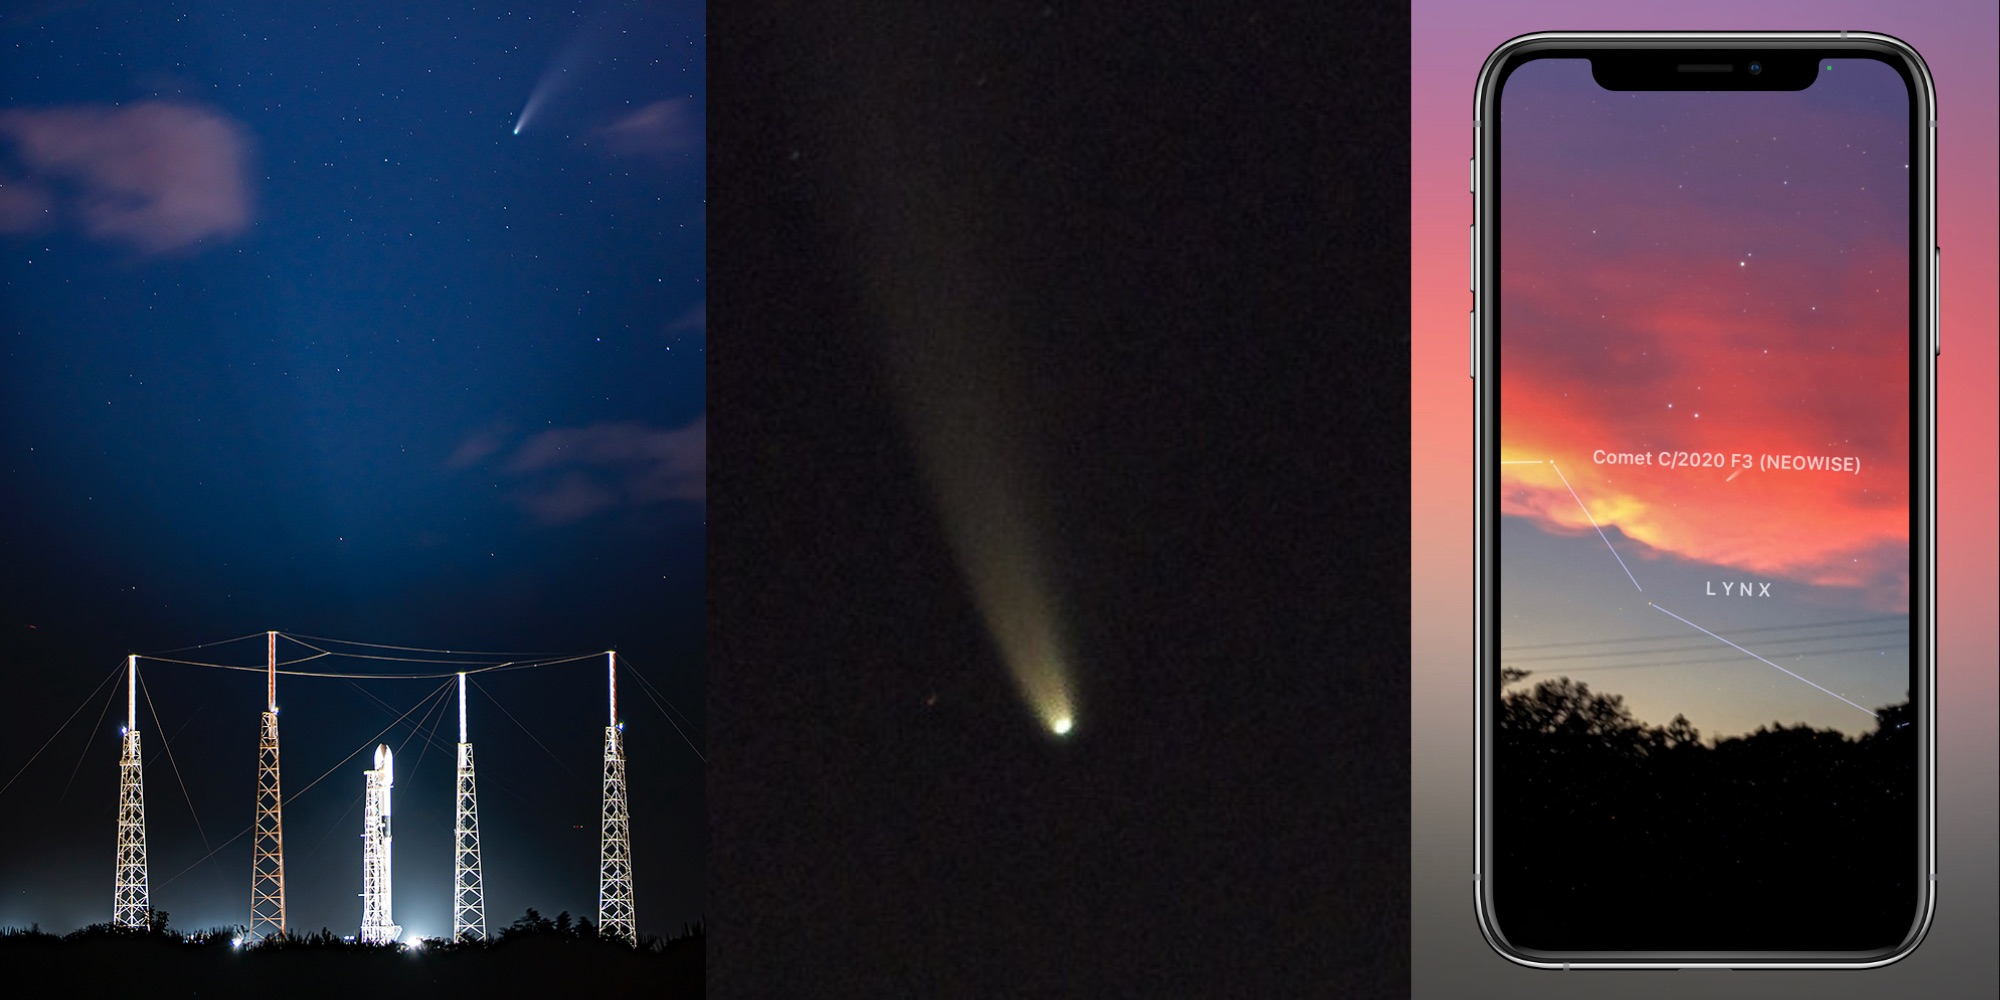 How to find NEOWISE with your iPhone before the comet disappears for 6,800 years - Space Explored